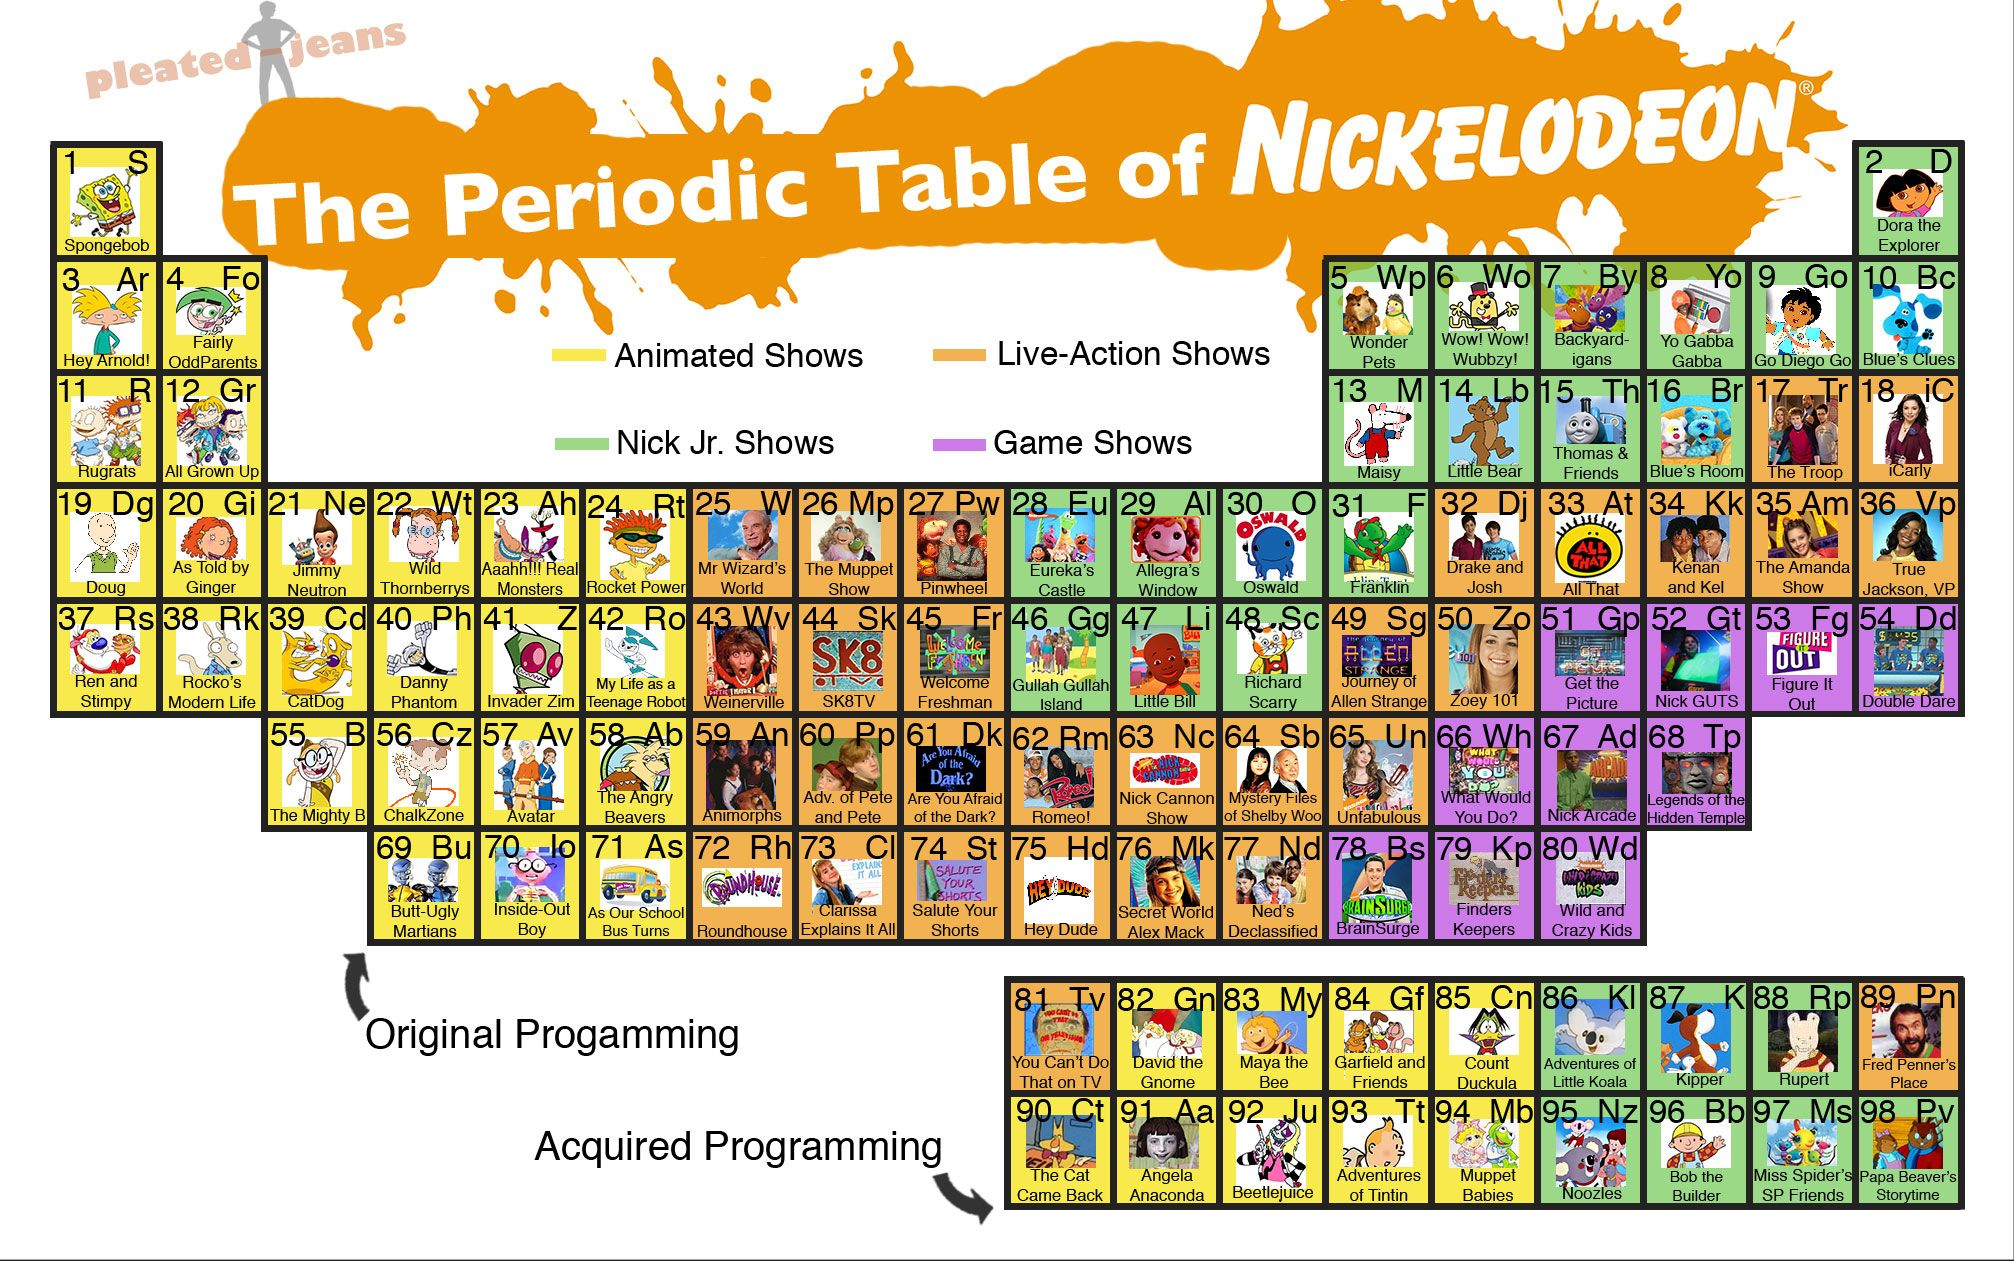 33 curious uses of periodic tables great visualizations or periodic table the periodic table of nickelodeon via urtaz Image collections